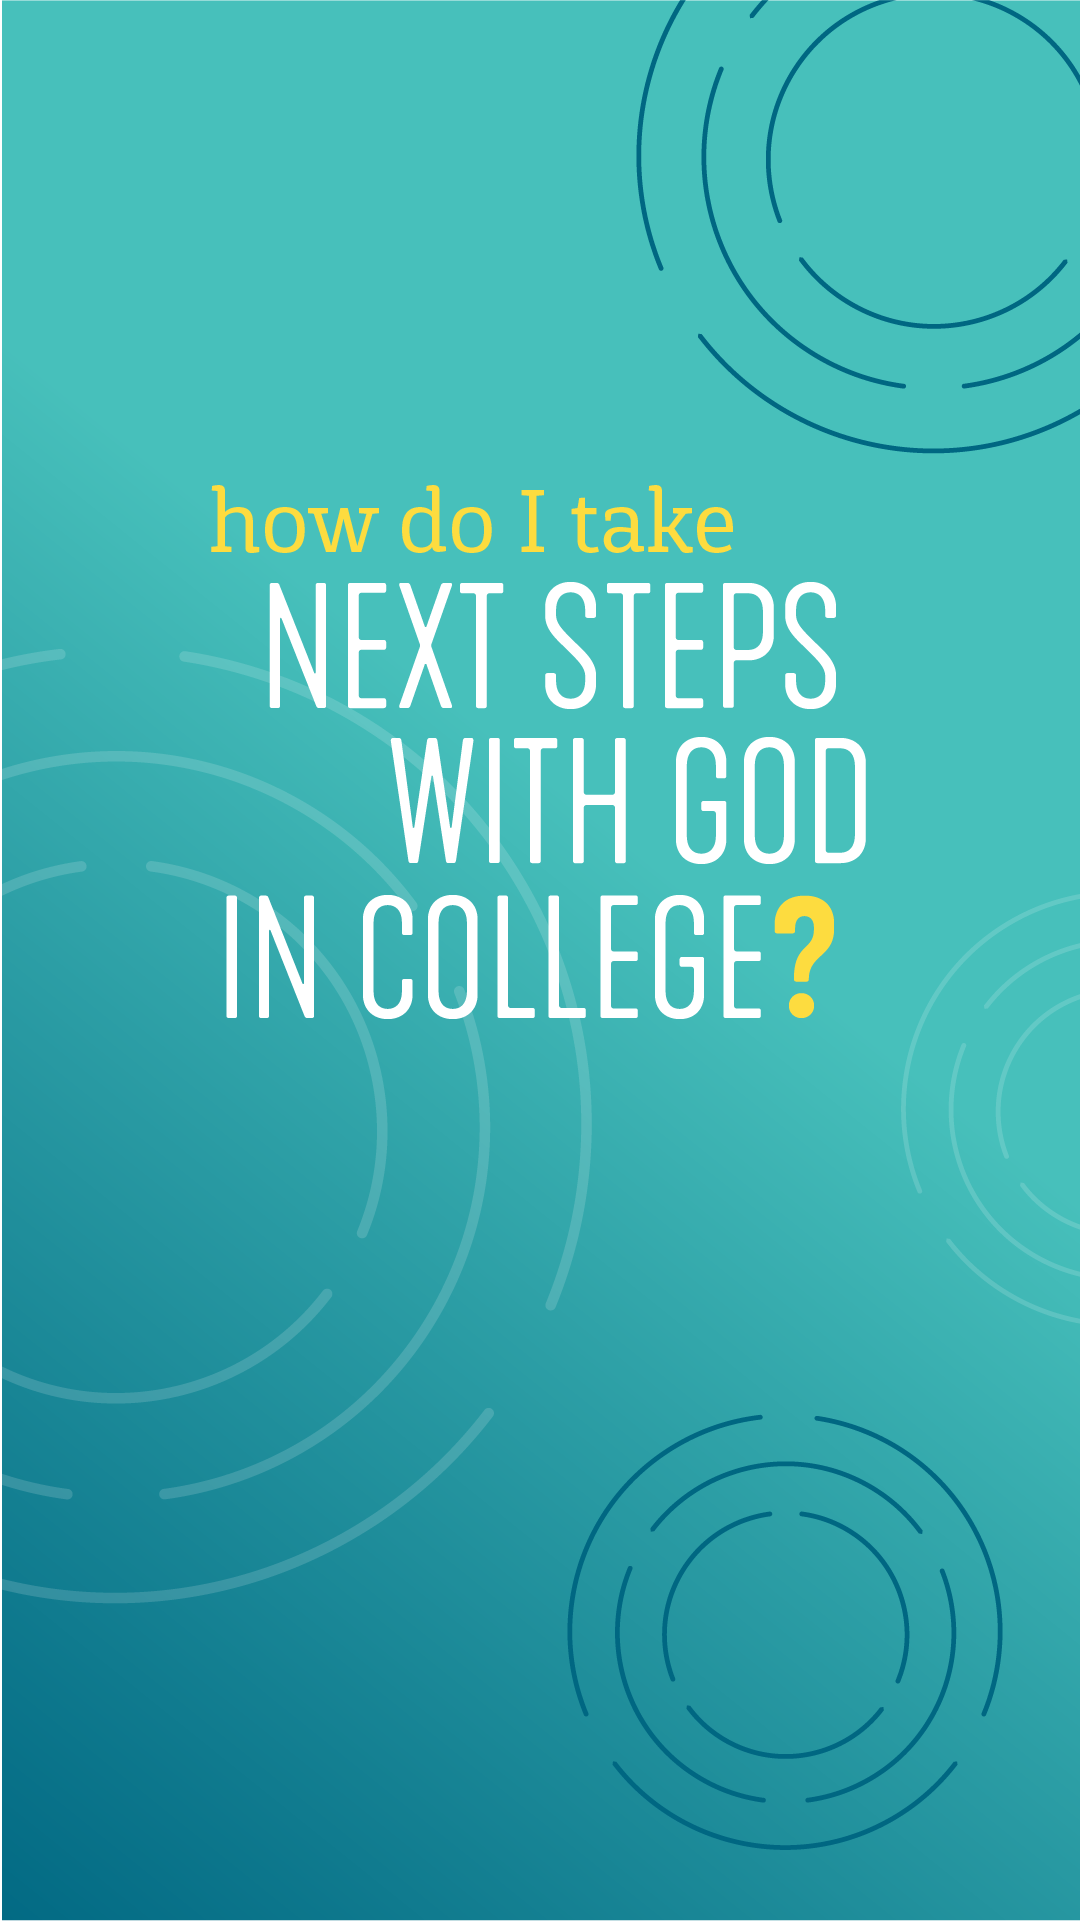 Next Steps with God